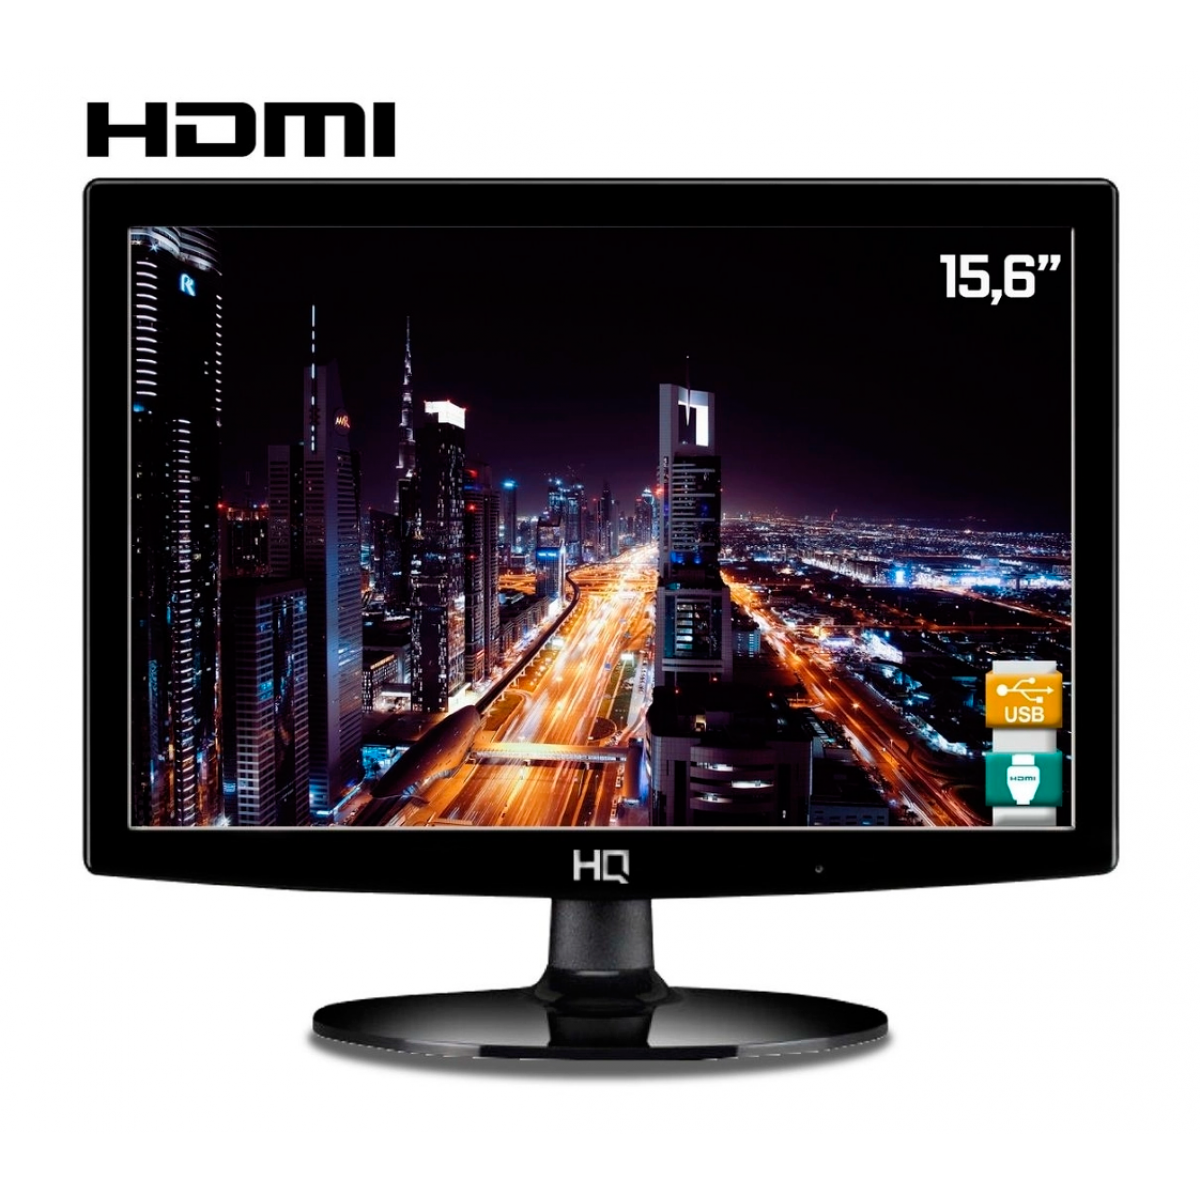 "Monitor HQ 15.6"", LED, HDMI / VGA, 15.6HQ-LED"